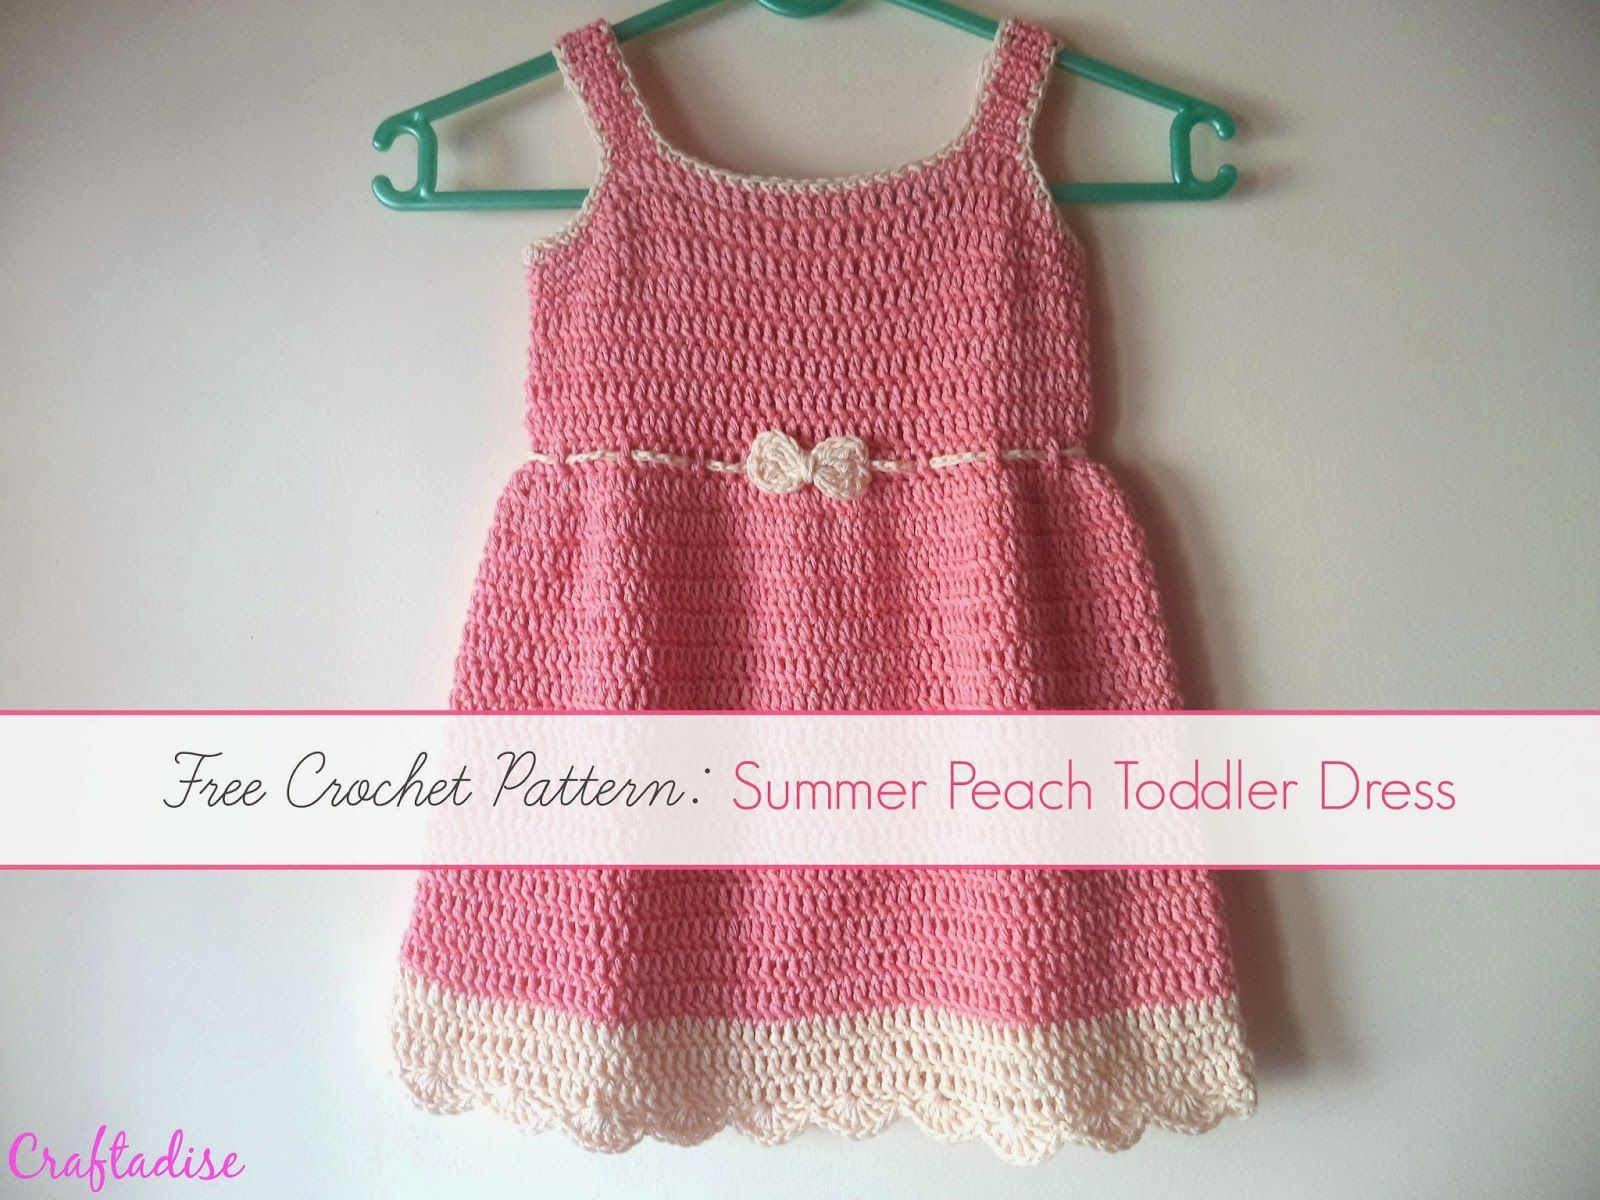 Free Crochet Pattern: Crochet Summer Peach Toddler Dress | Crochet ...